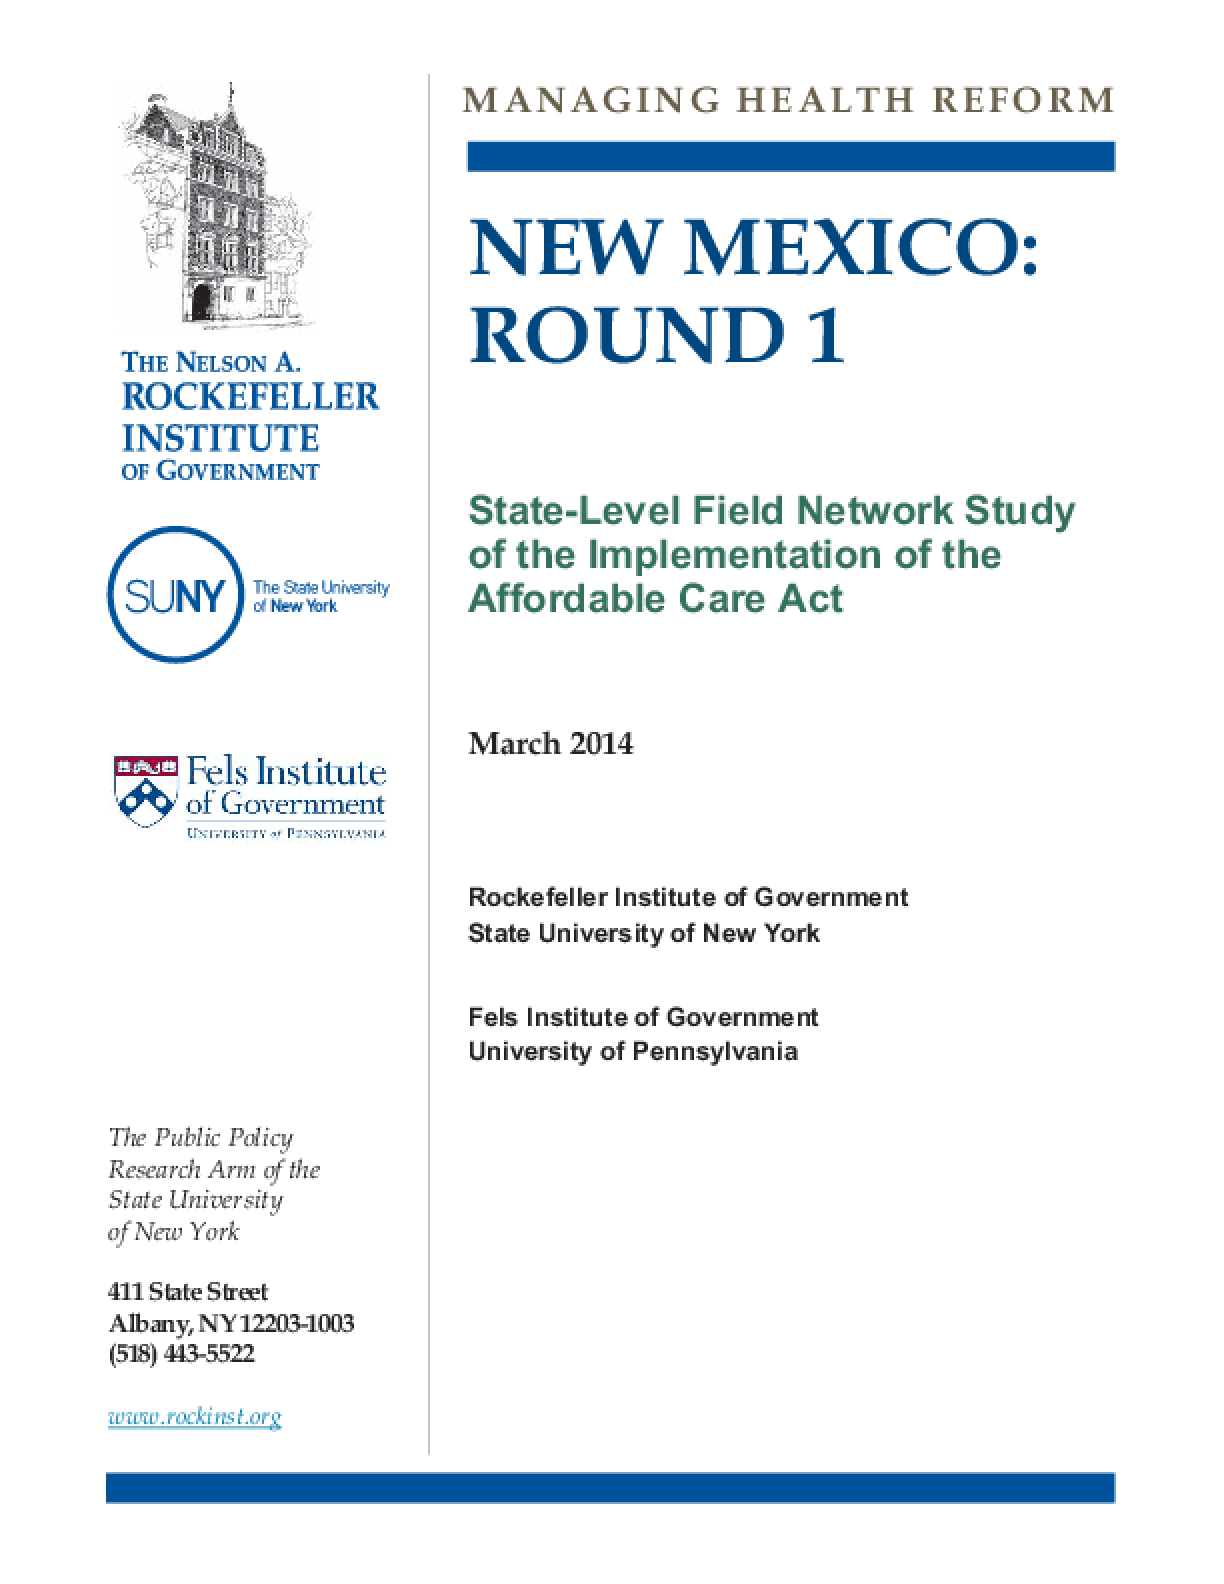 New Mexico: Round 1 - State-Level Field Network Study of the Implementation of the Affordable Care Act